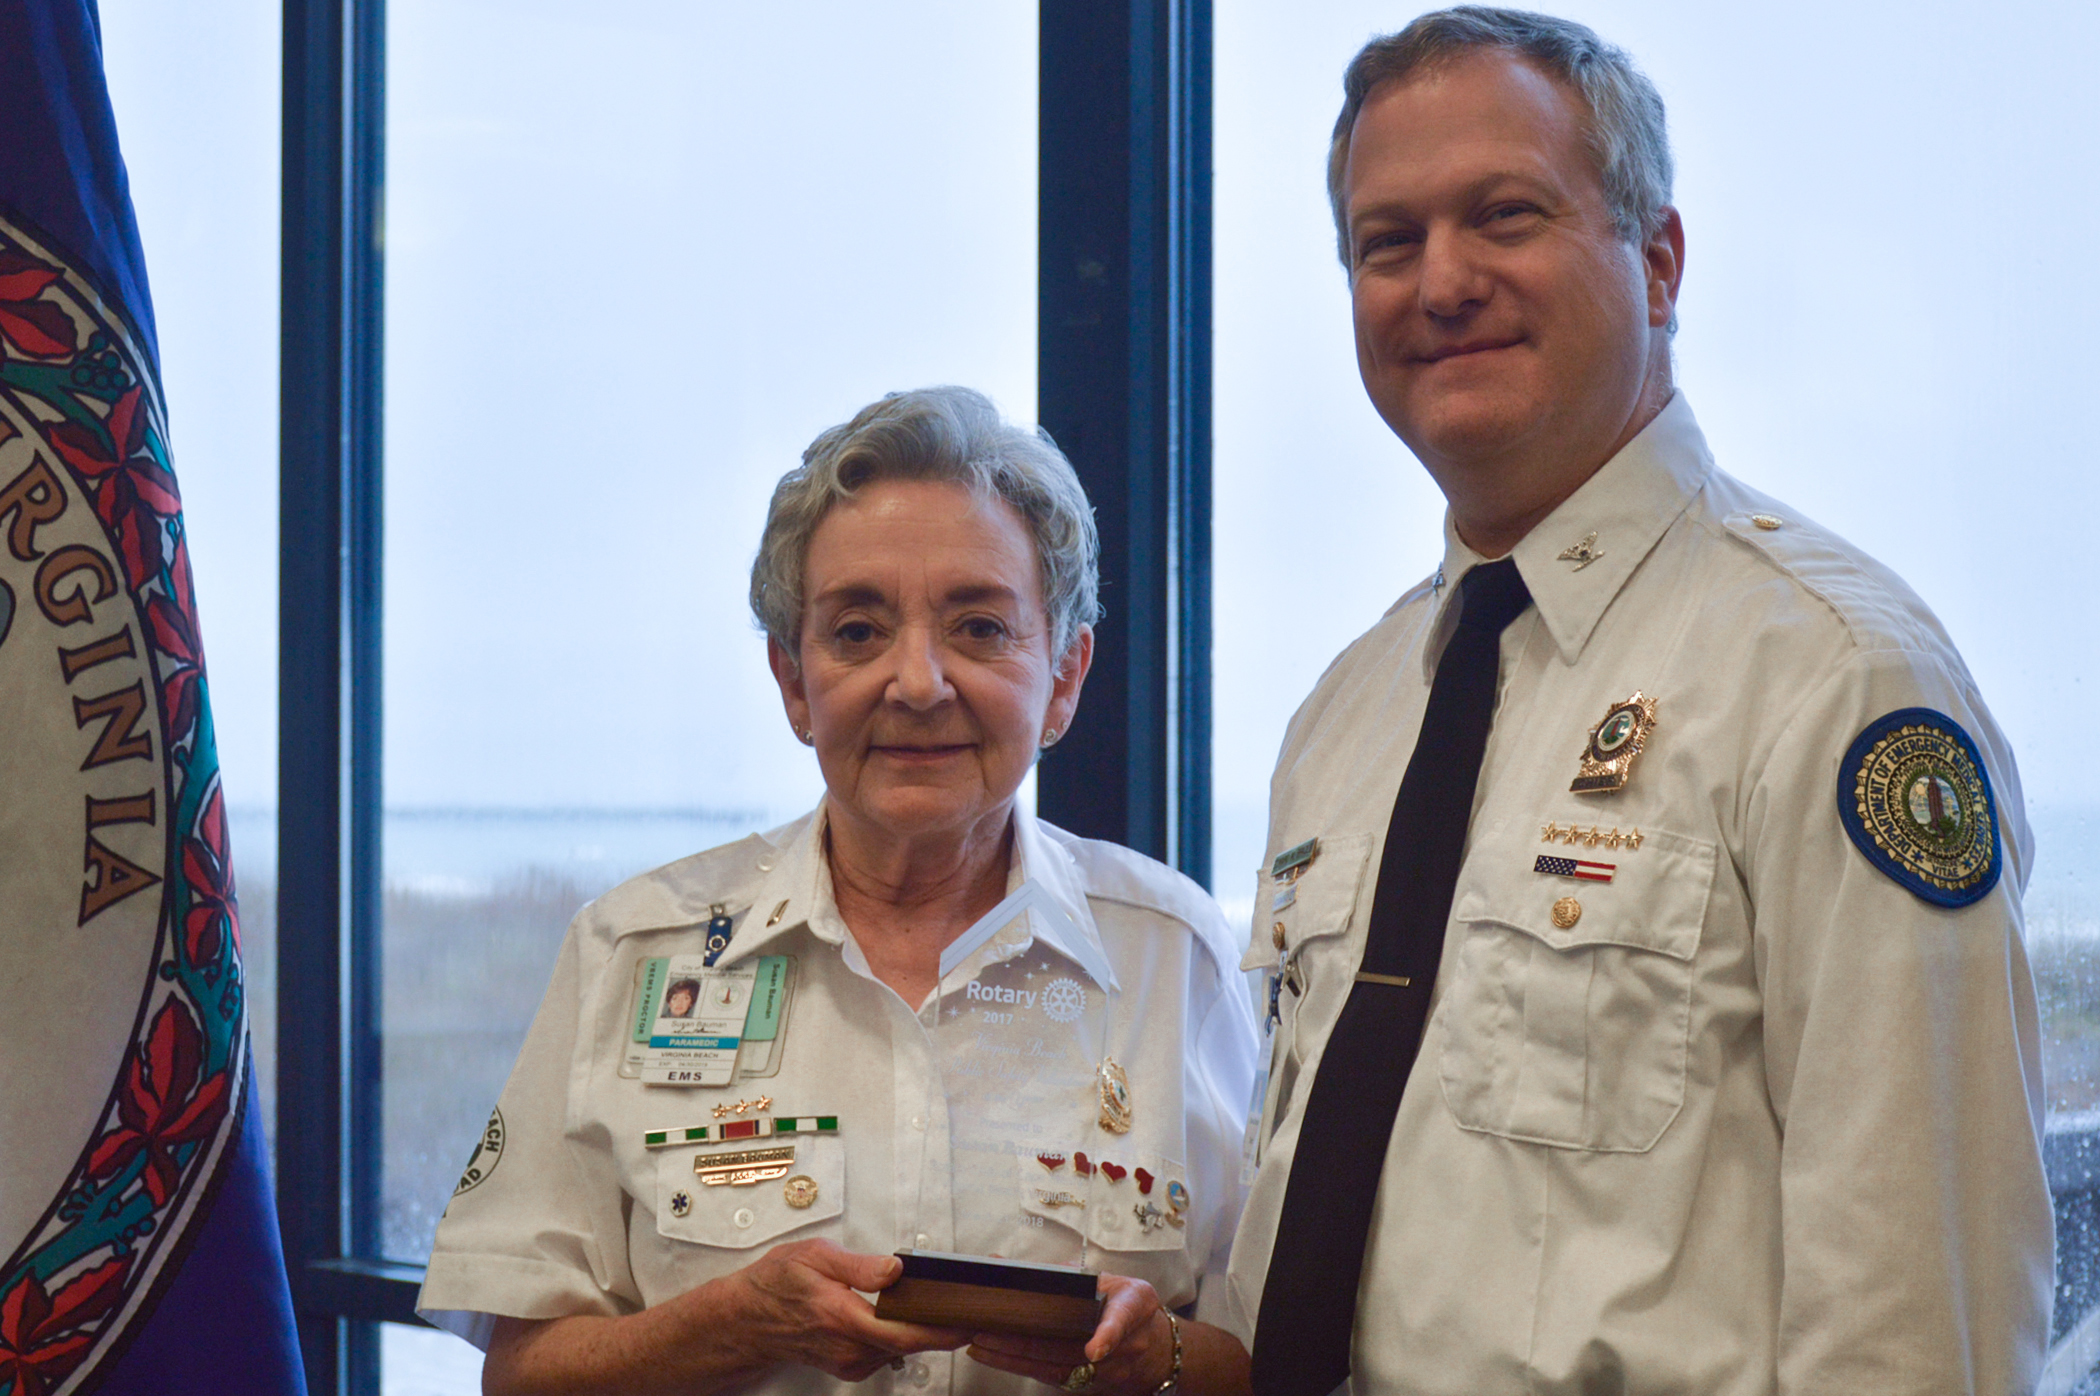 Public Safety Volunteer of the Year, Susan Bauman with VB EVMS Chief, Ed Brazle